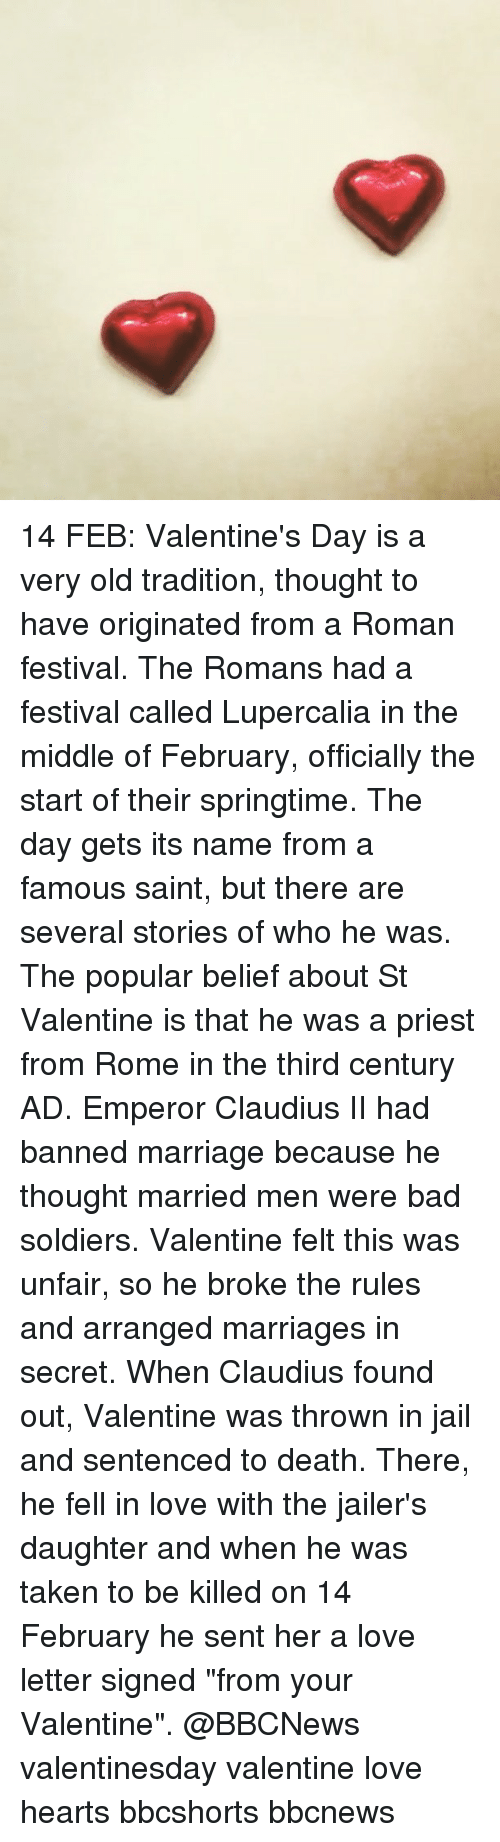 """Memes, Love Letter, and Arranged Marriage: 14 FEB: Valentine's Day is a very old tradition, thought to have originated from a Roman festival. The Romans had a festival called Lupercalia in the middle of February, officially the start of their springtime. The day gets its name from a famous saint, but there are several stories of who he was. The popular belief about St Valentine is that he was a priest from Rome in the third century AD. Emperor Claudius II had banned marriage because he thought married men were bad soldiers. Valentine felt this was unfair, so he broke the rules and arranged marriages in secret. When Claudius found out, Valentine was thrown in jail and sentenced to death. There, he fell in love with the jailer's daughter and when he was taken to be killed on 14 February he sent her a love letter signed """"from your Valentine"""". @BBCNews valentinesday valentine love hearts bbcshorts bbcnews"""